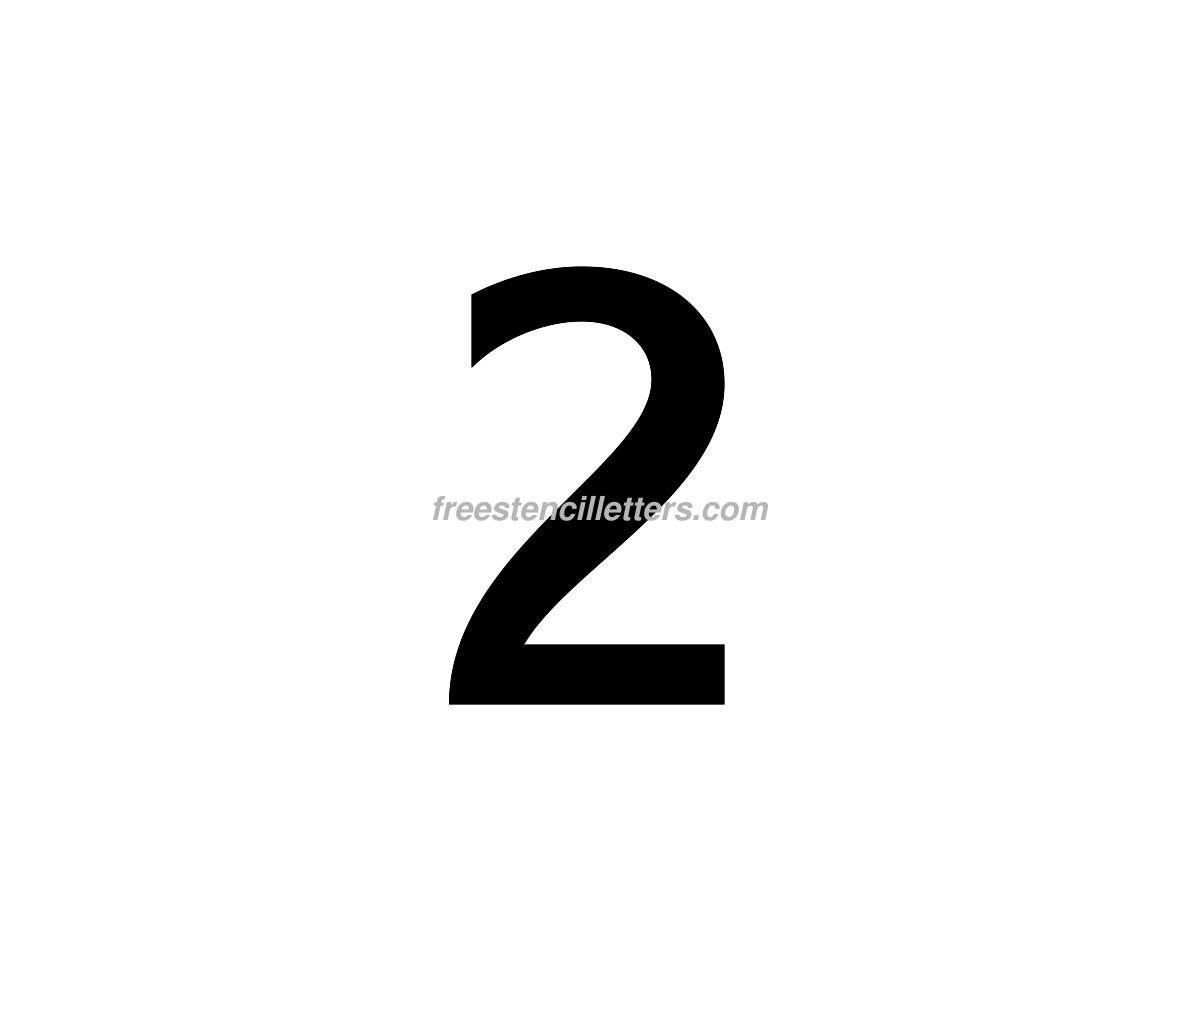 number-2  Inch Letter Stencils Template on